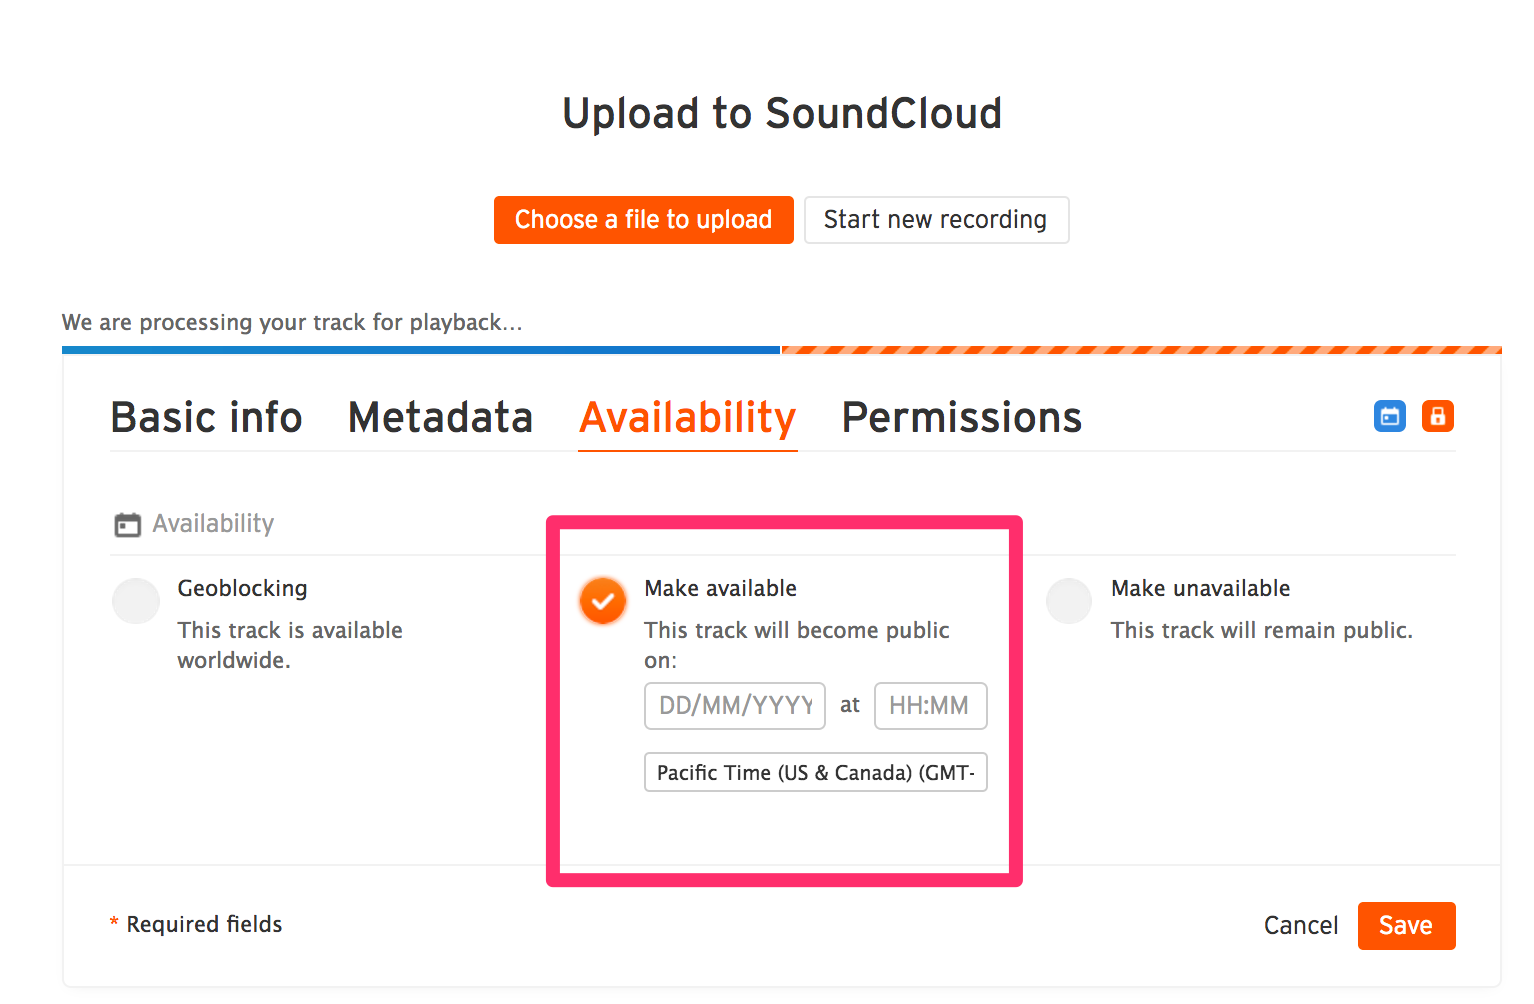 Upload to SoundCloud